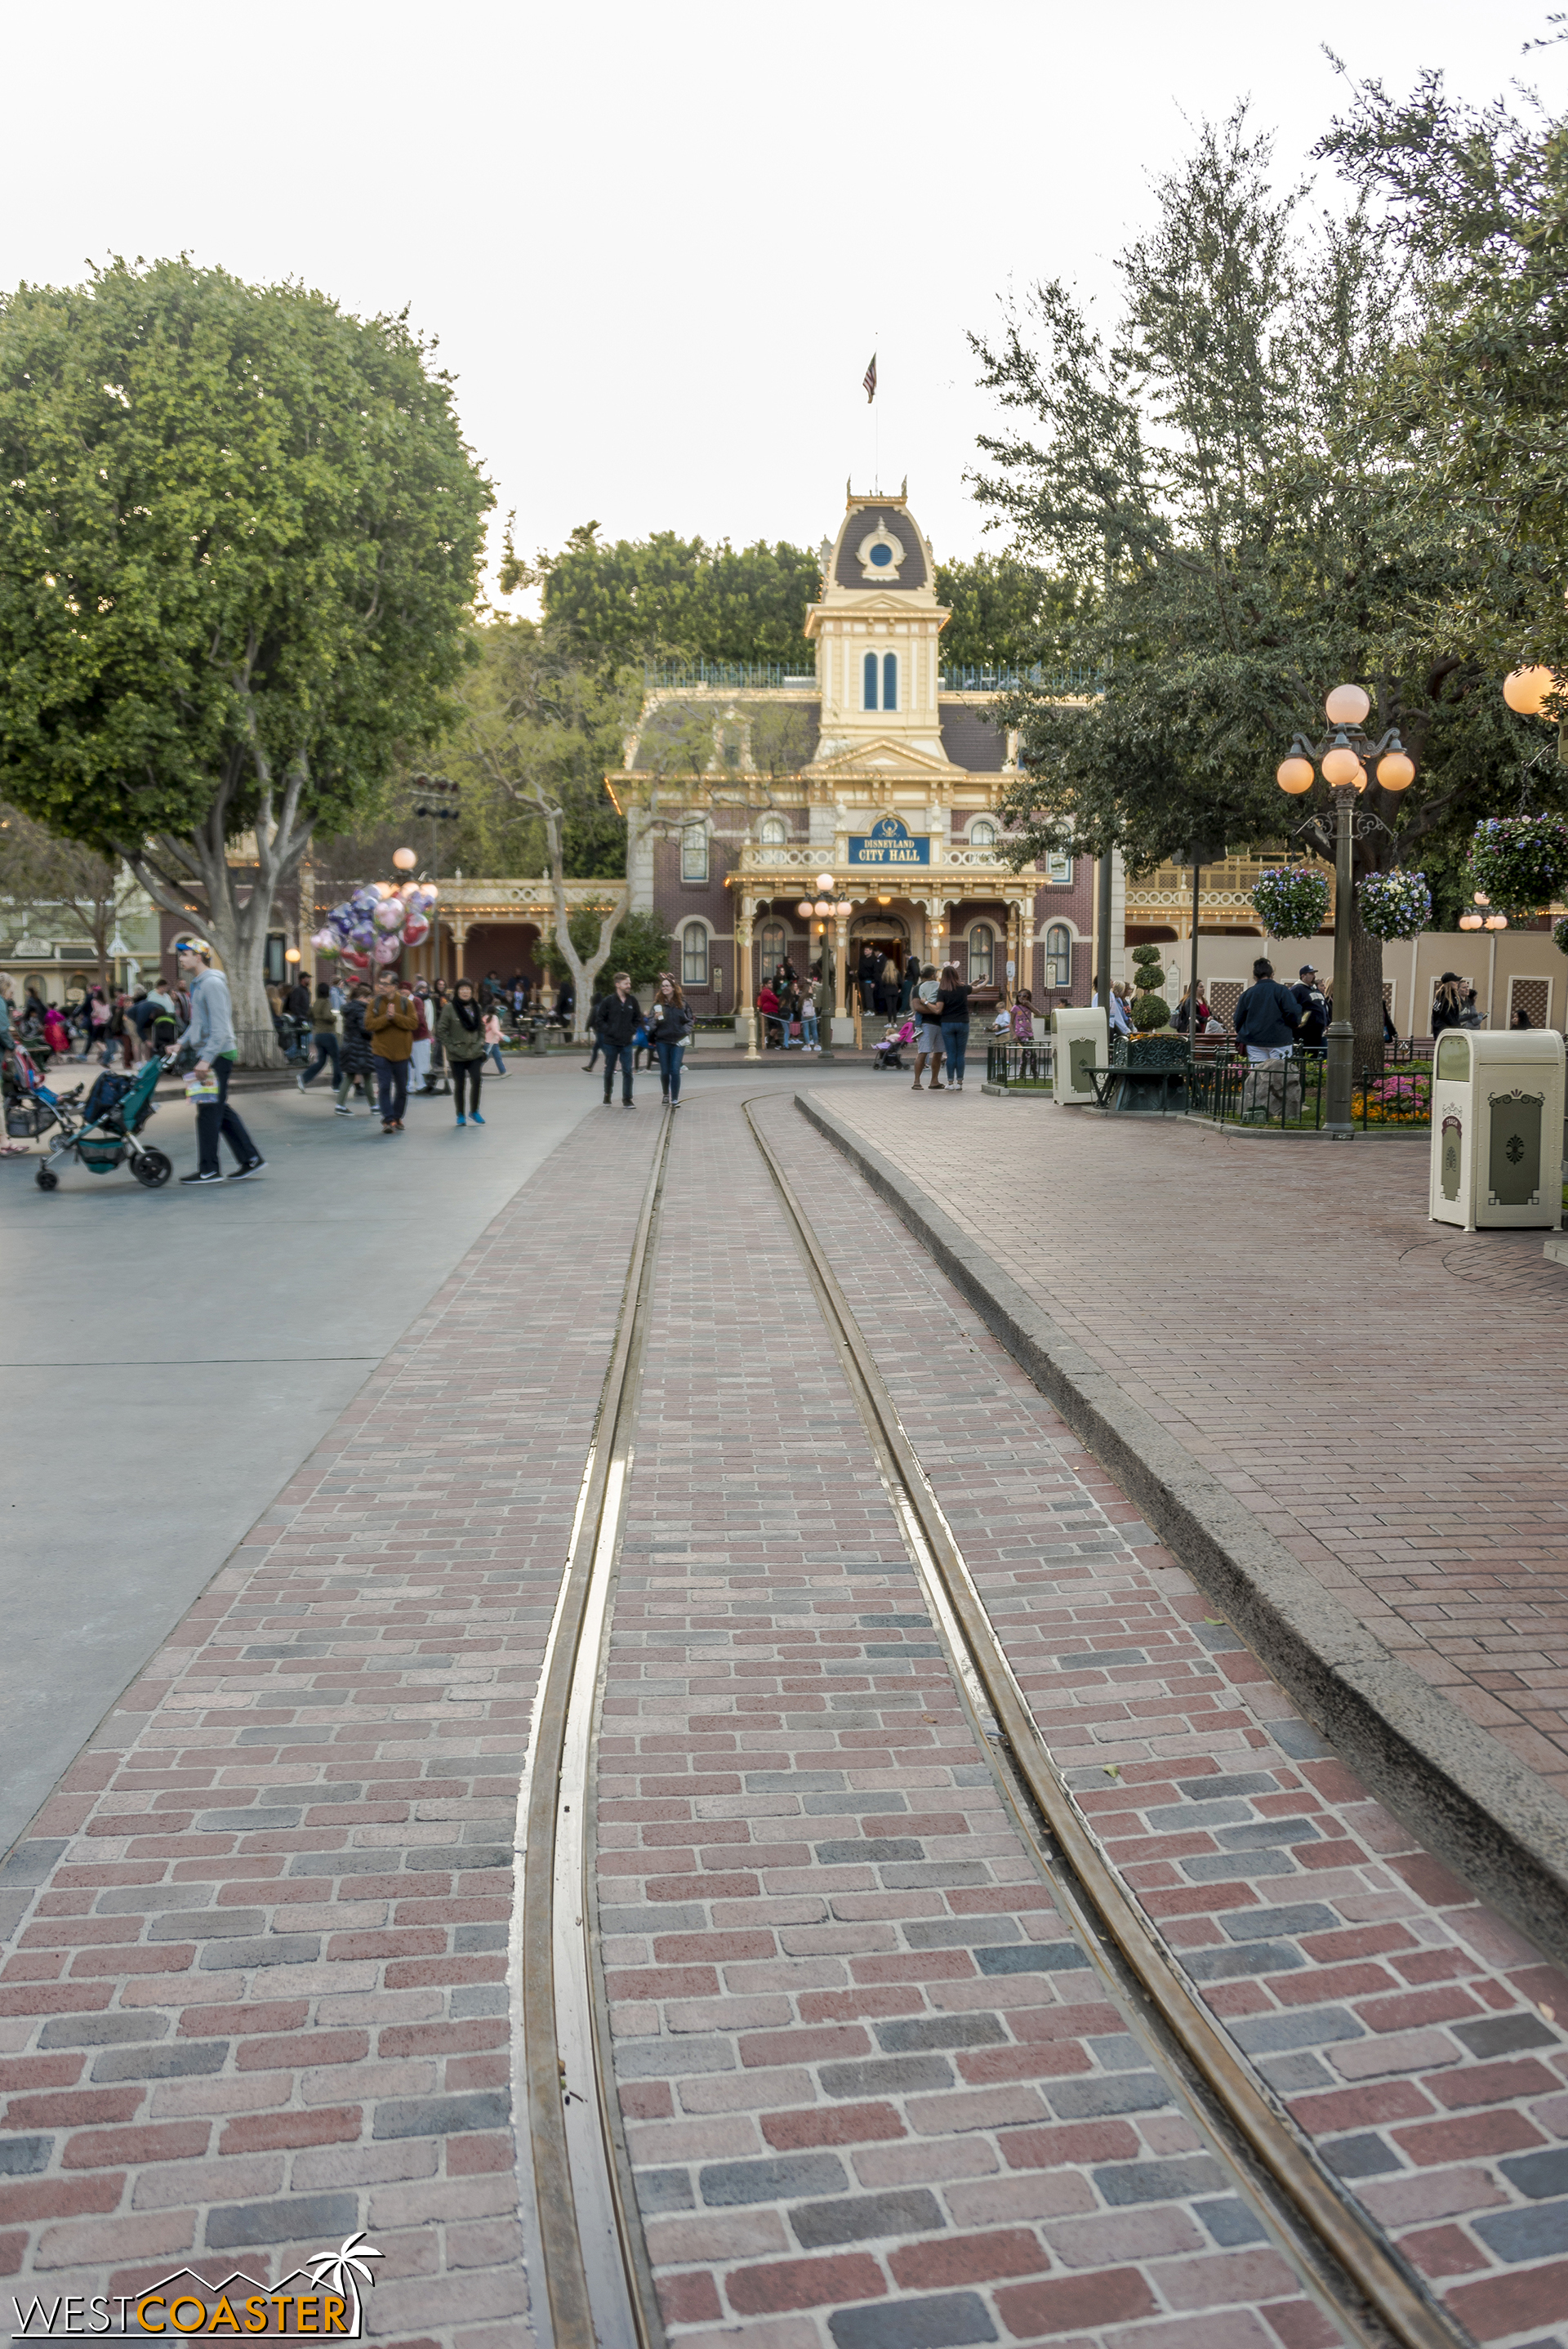 Well lookie here, we've got some freshly unveiled Main Street trolley track!